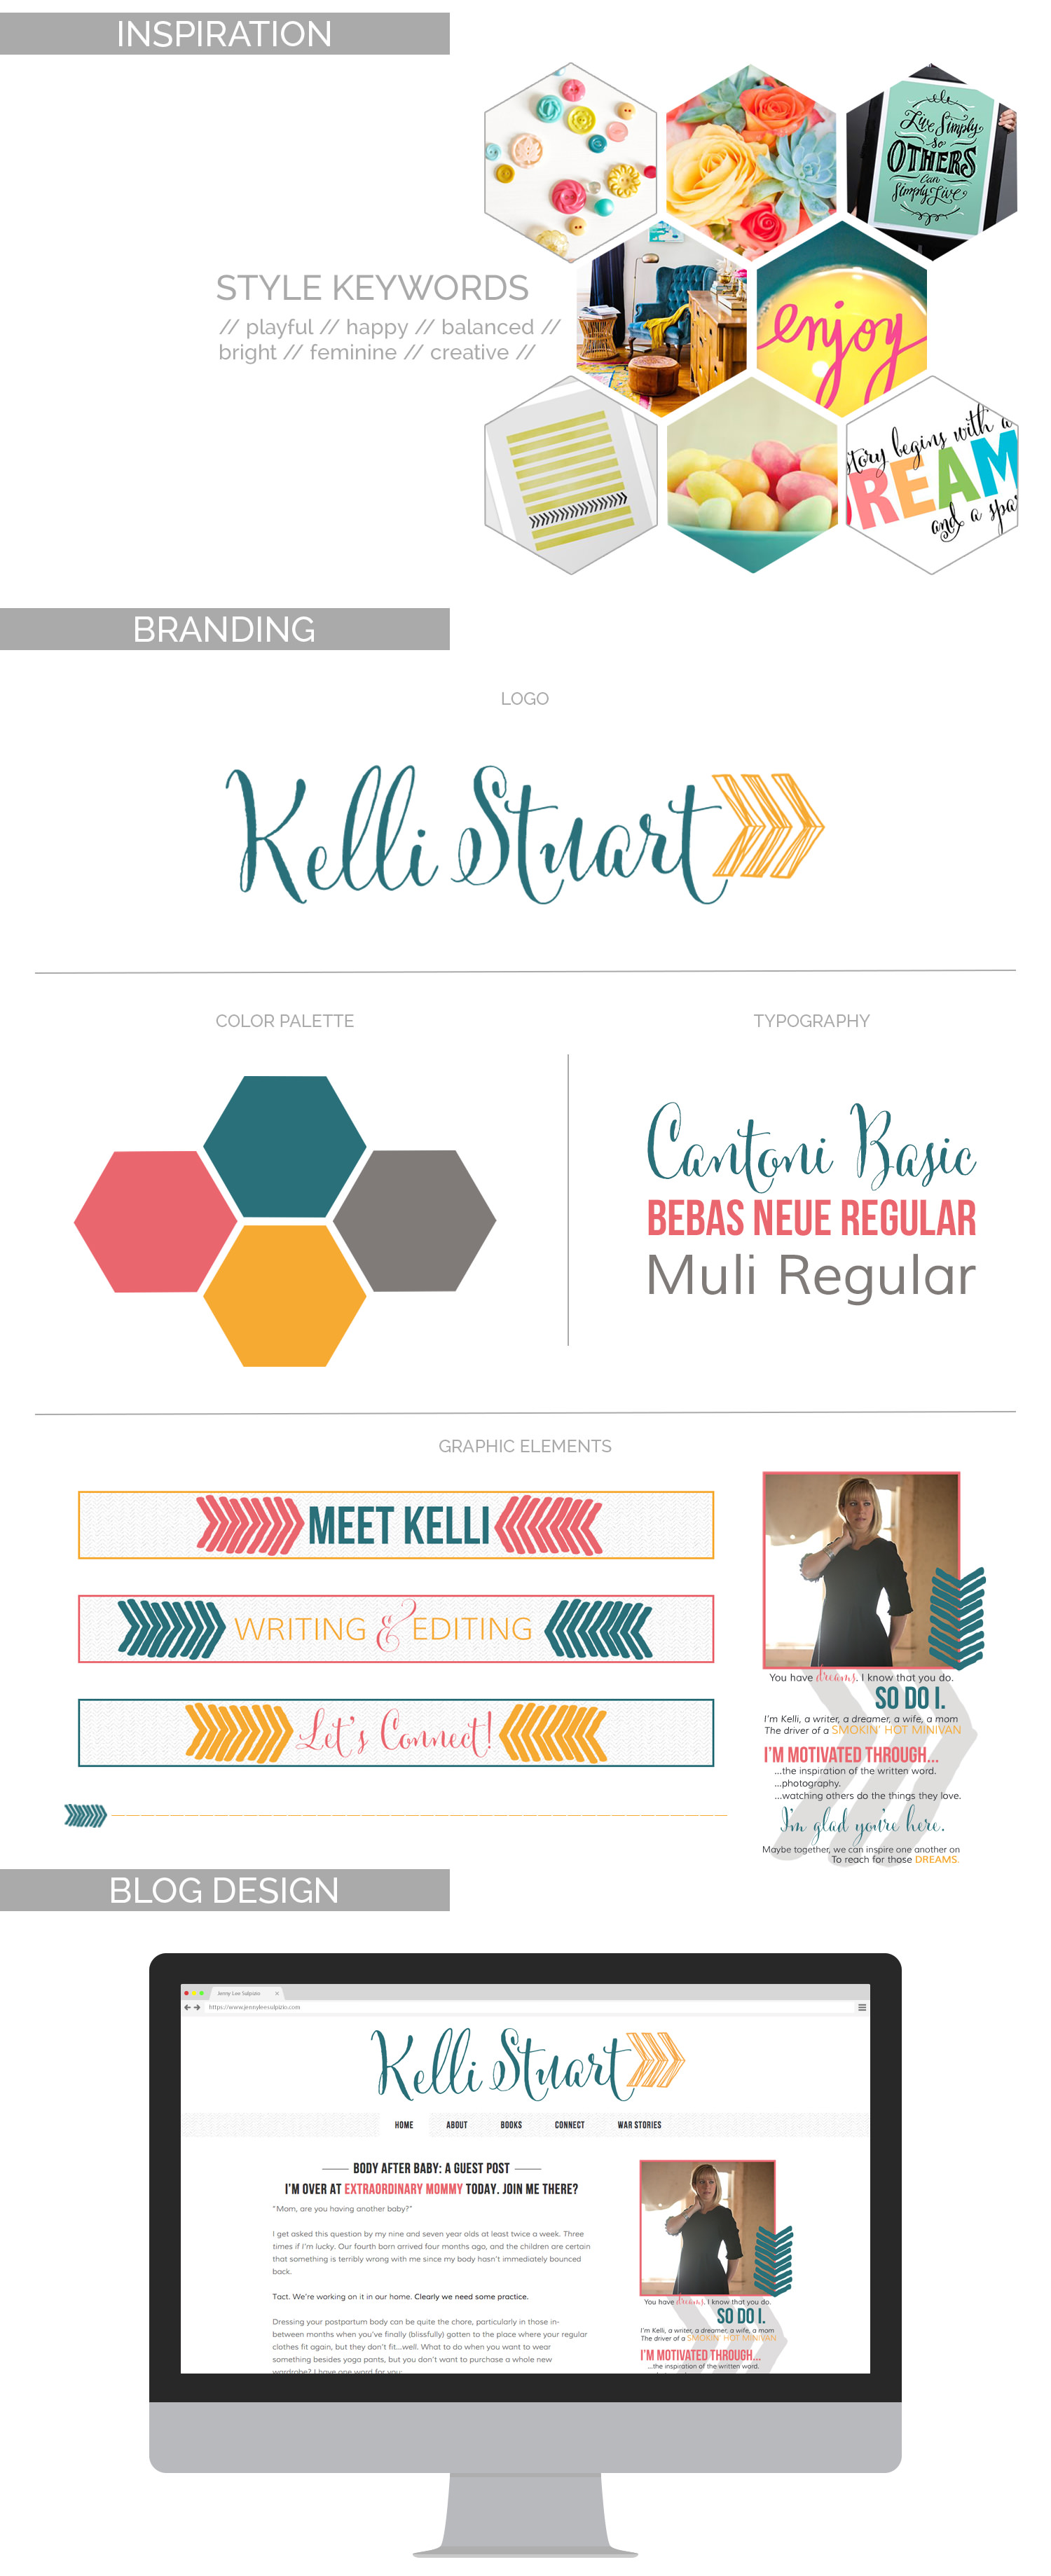 Kelli Stuart | Design and Development by Finding Eden Media